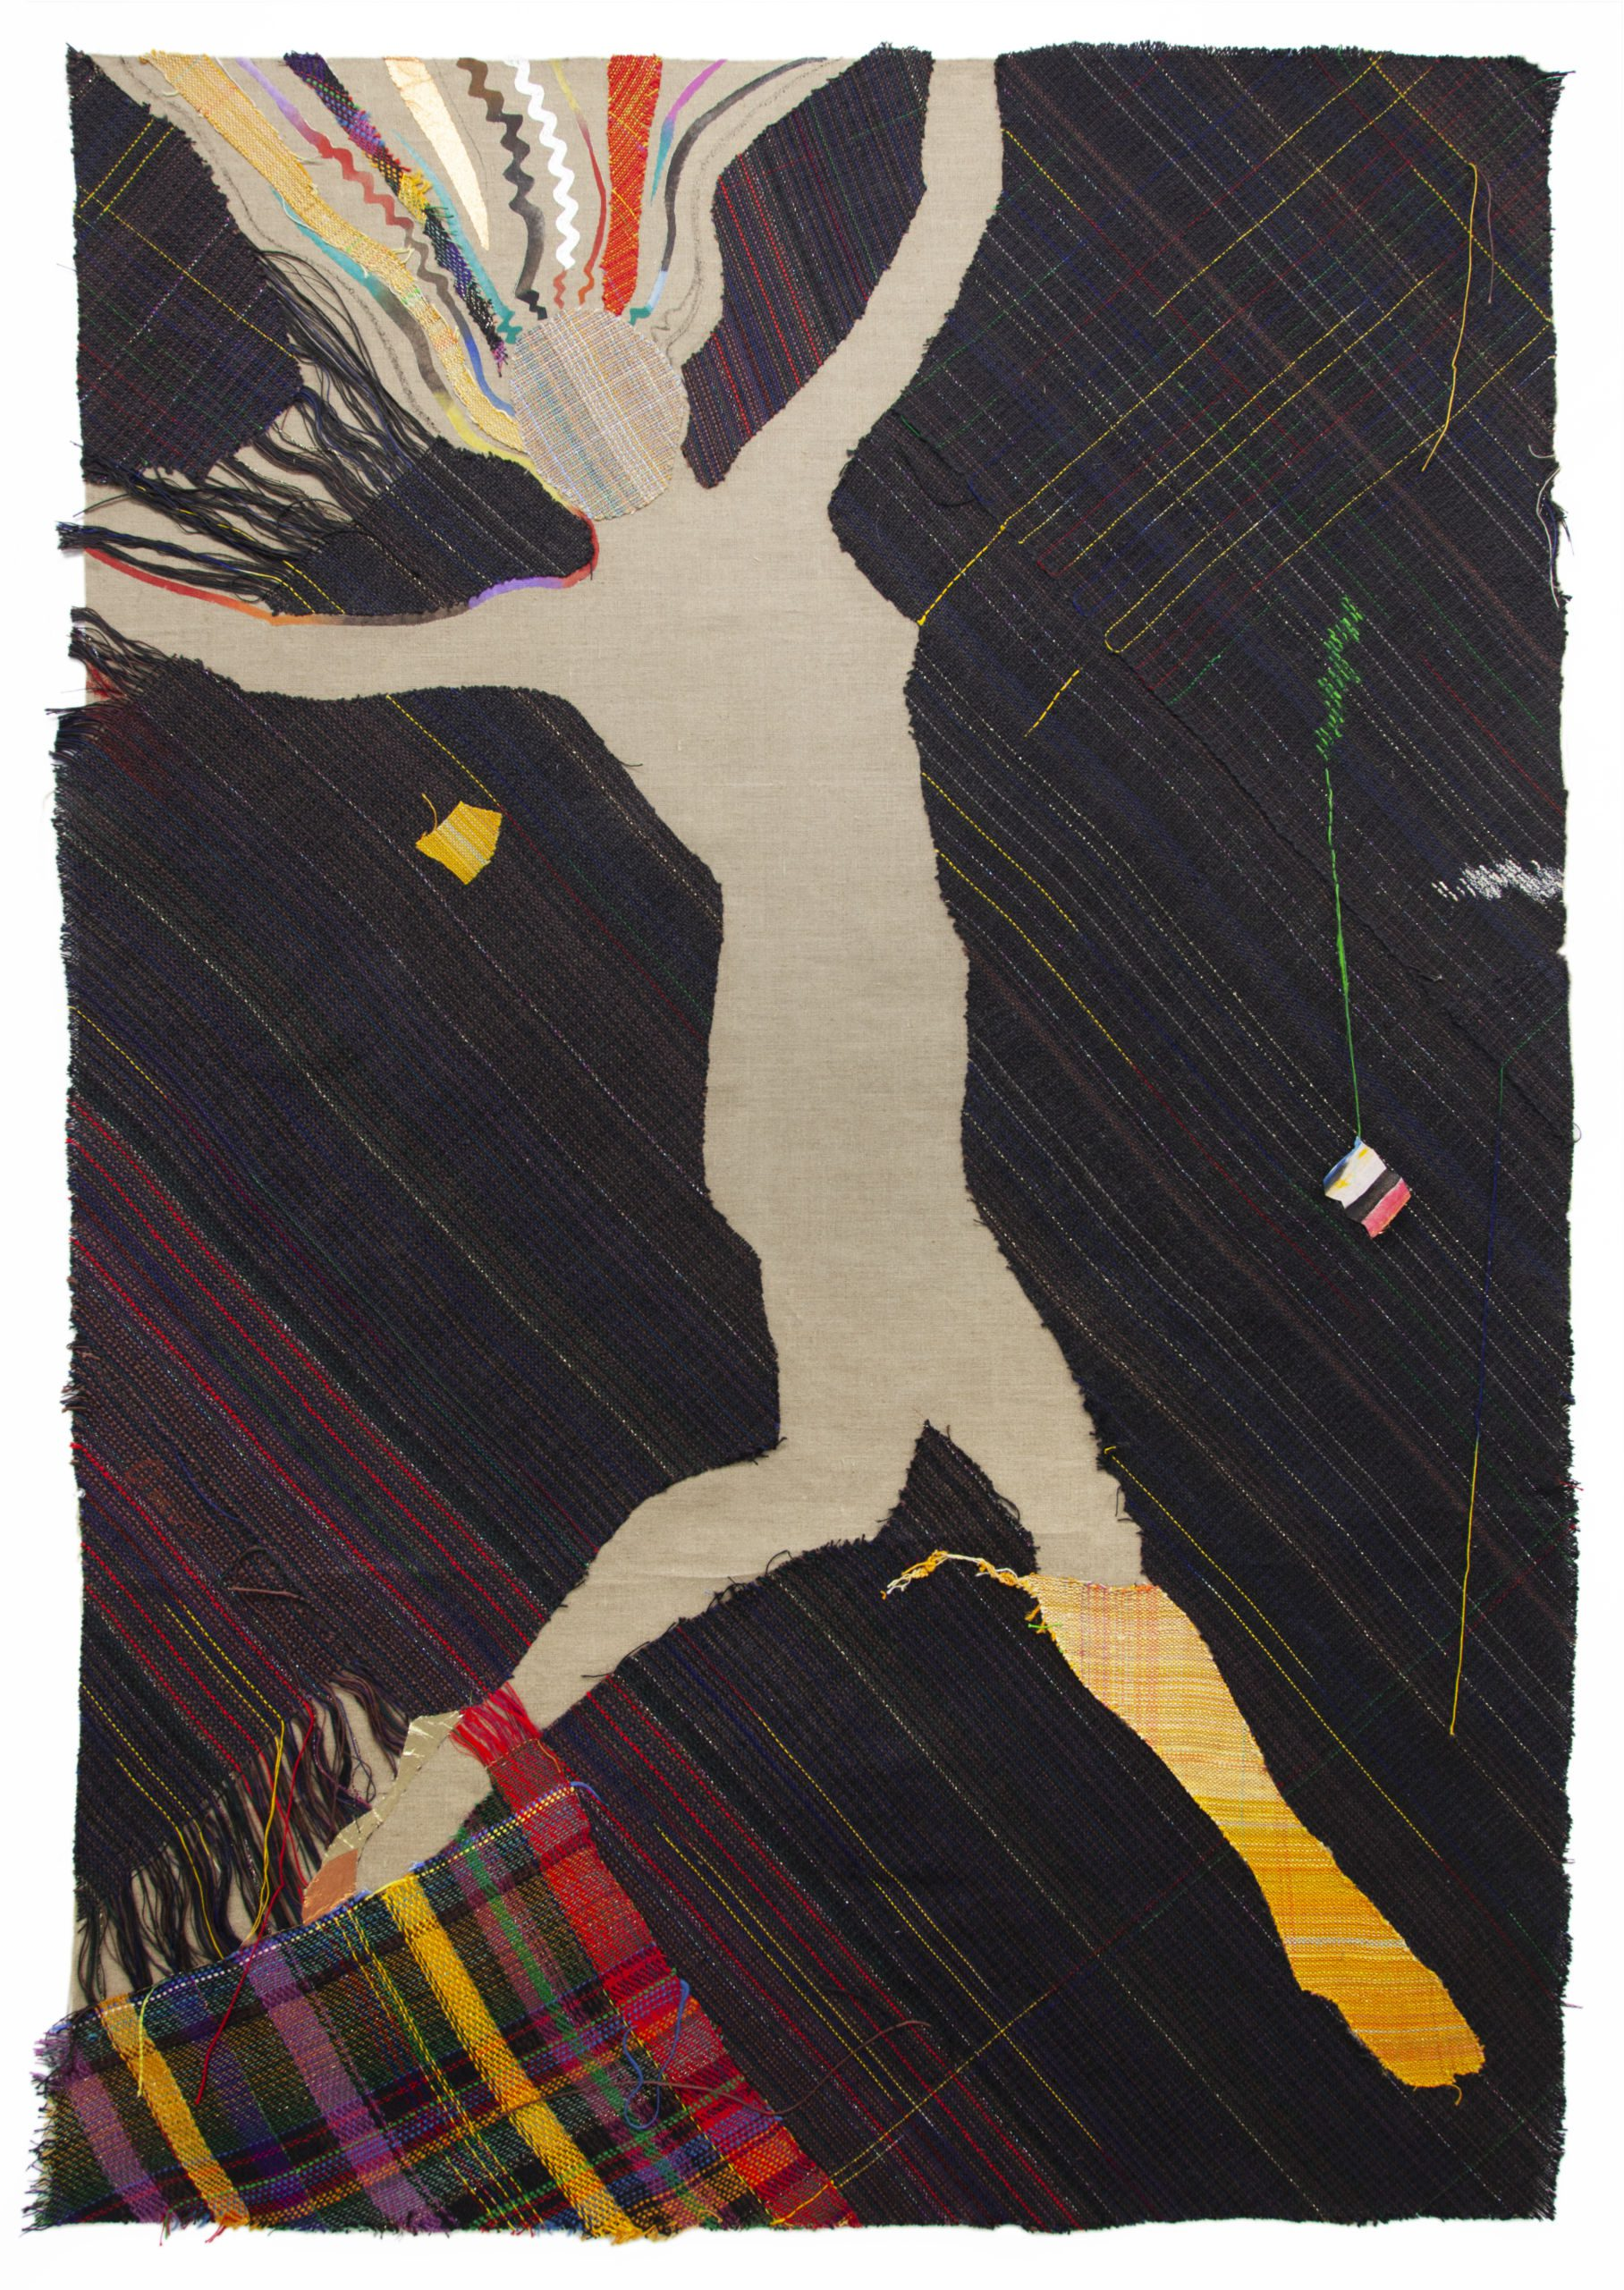 Emma Amos Star 76 x 52 inches (193 x 132.1 cm) Acrylic and hand-woven fabric on canvas 1982